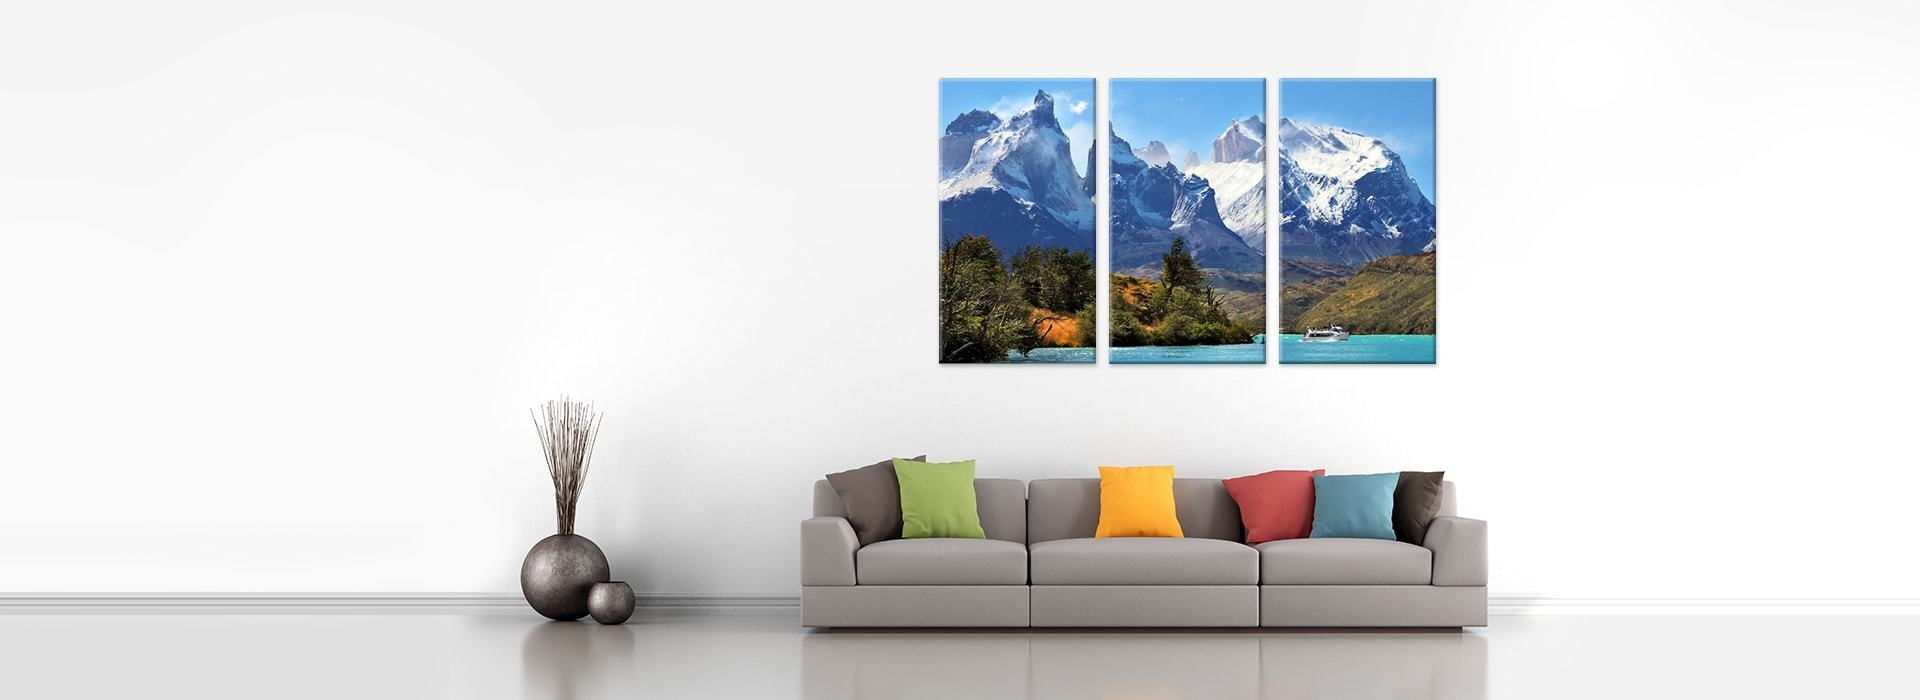 Canvas Prints | Canvas Factory With Regard To Newest Canvas Wall Art Of Perth (View 9 of 15)